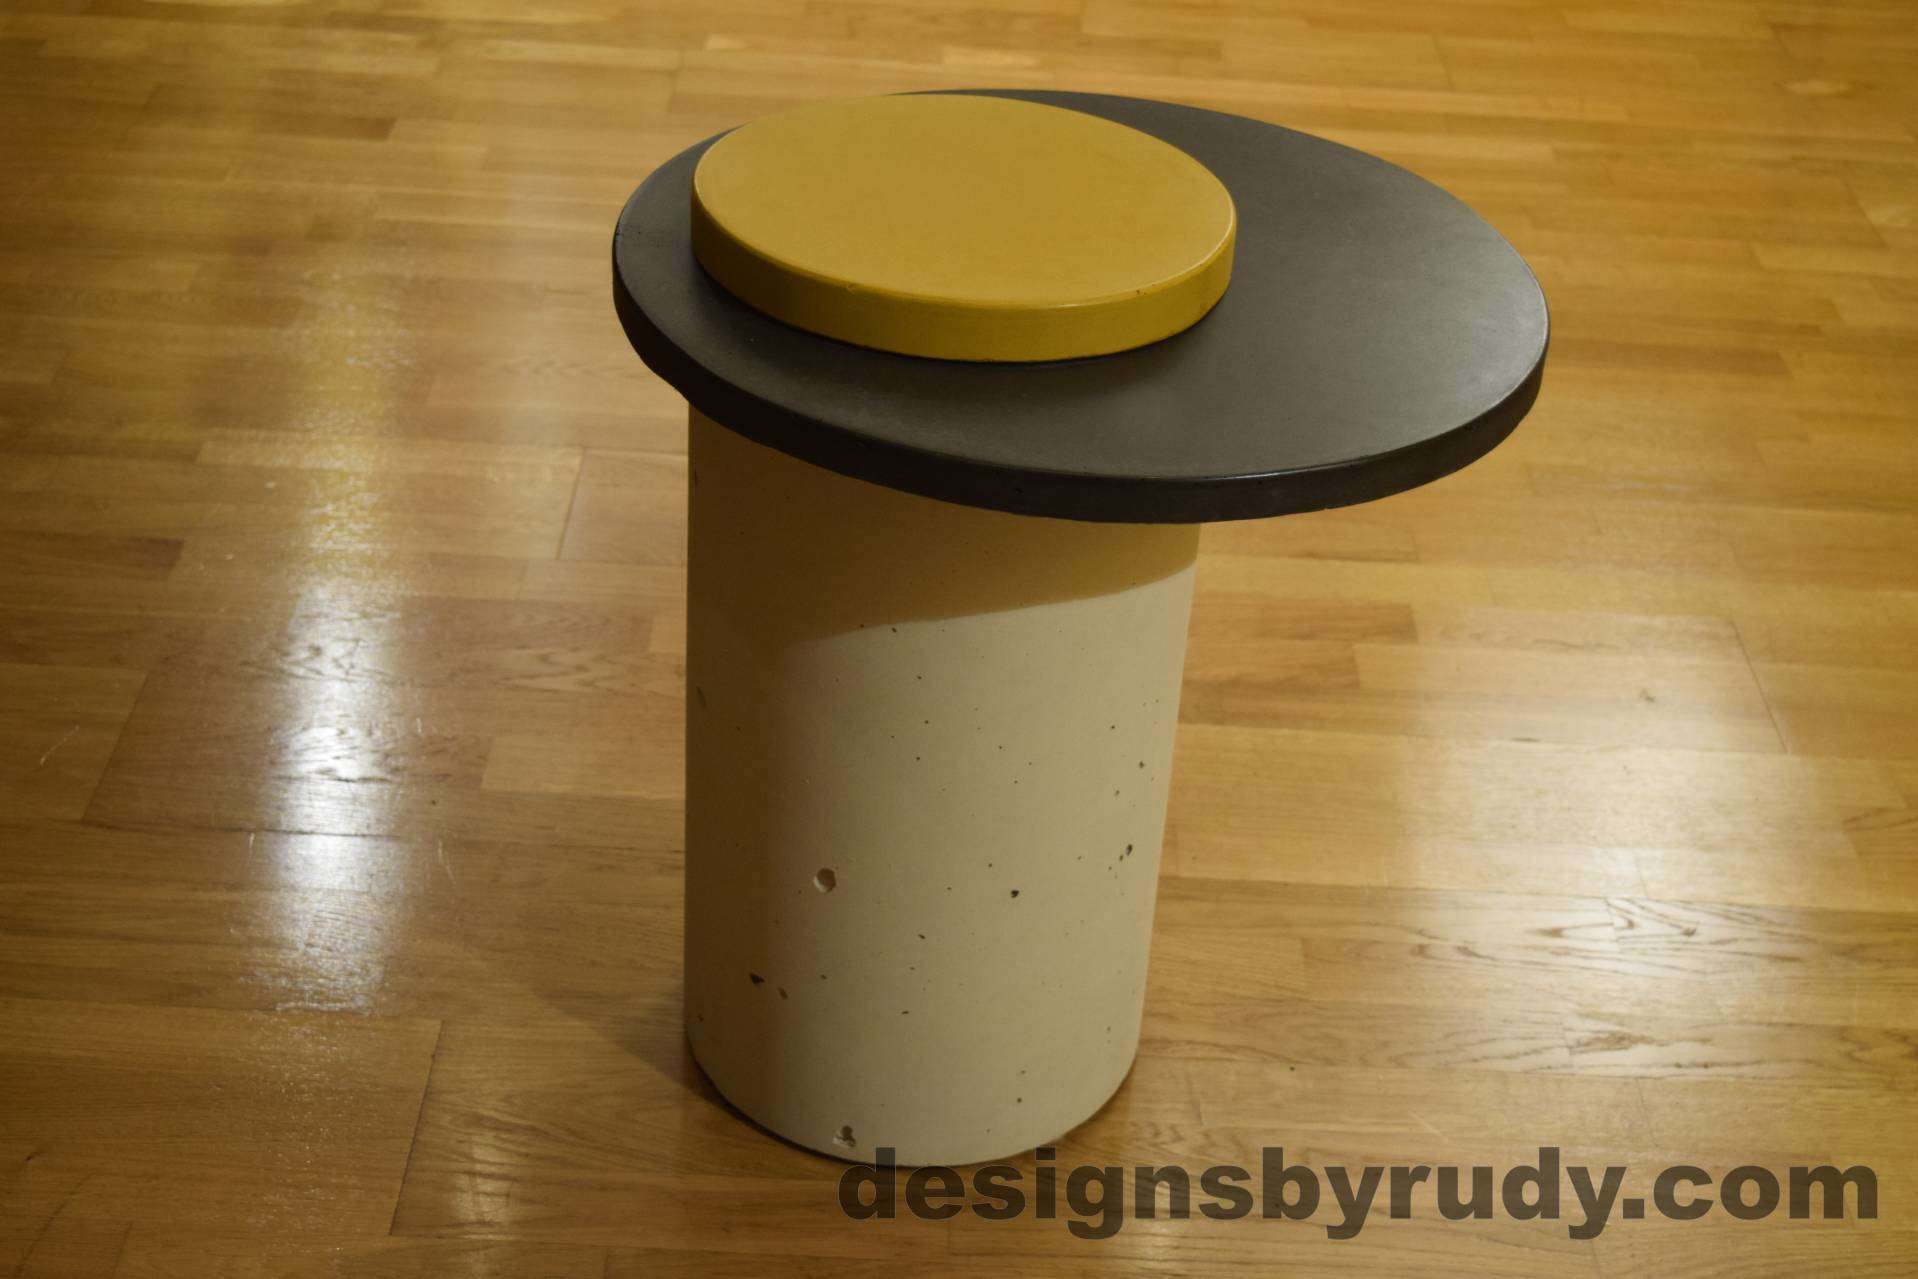 White Concrete Side Table, Charcoal Top and Yellow Cap, Pillars model, Designs by Rudy L